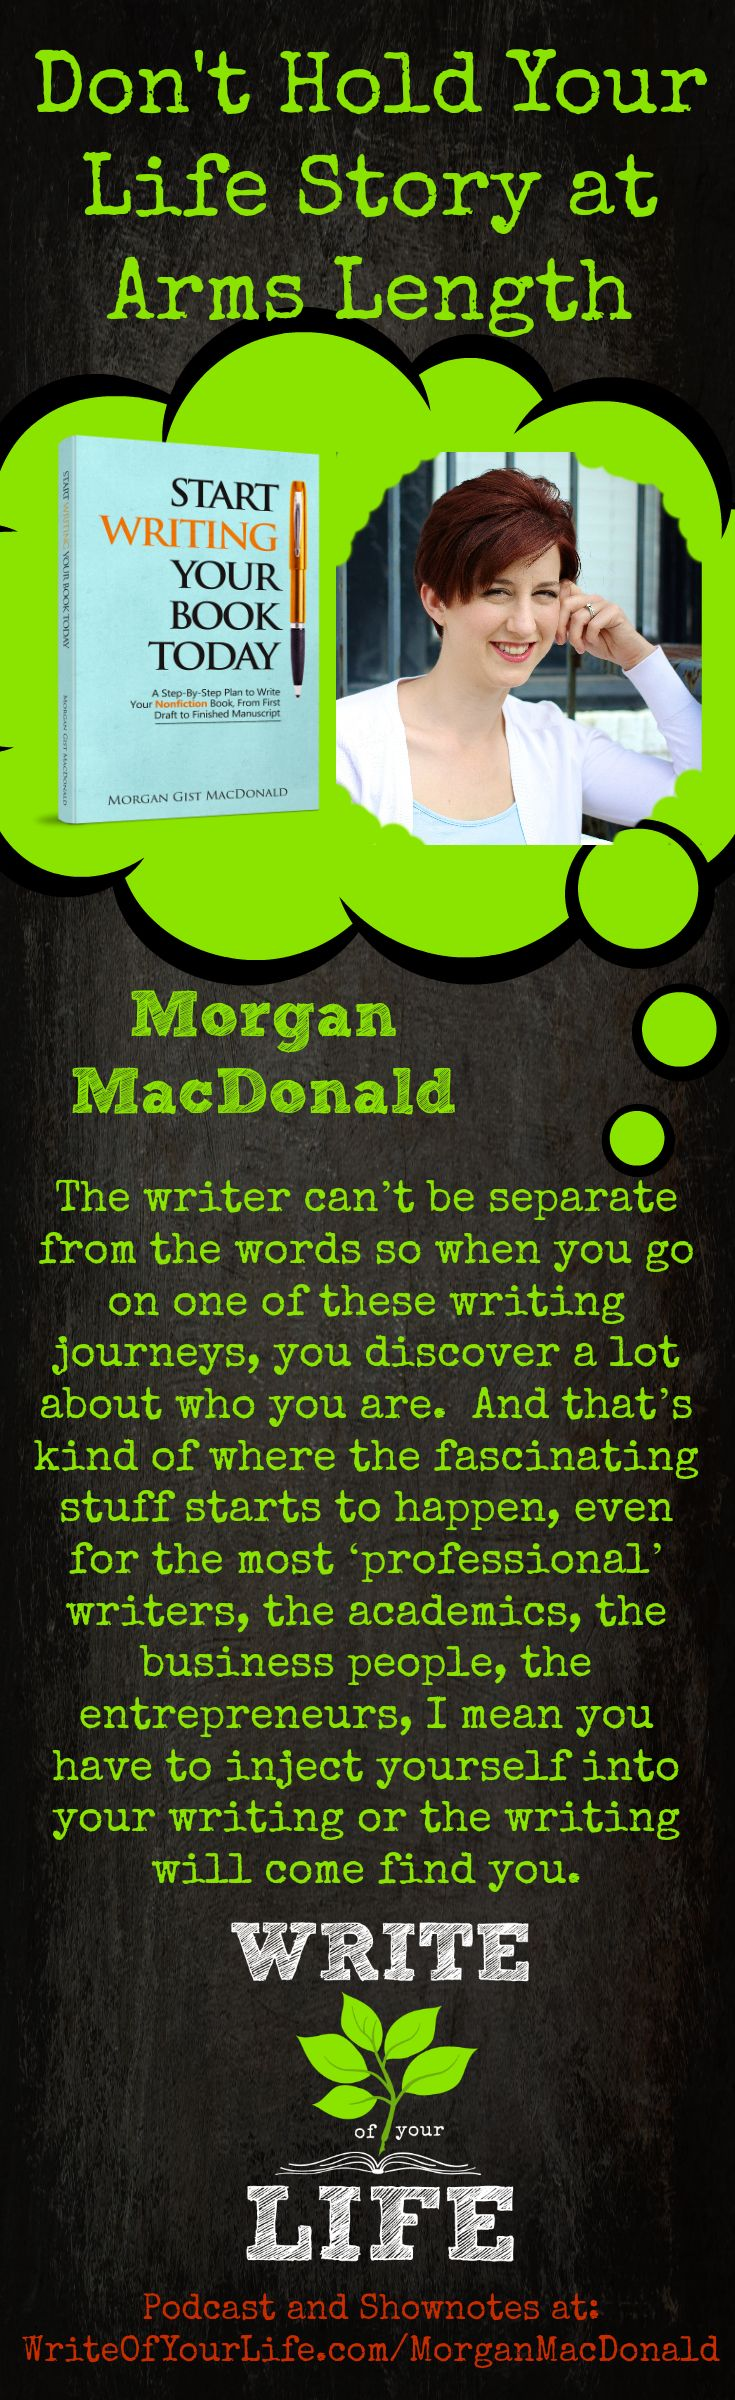 Sometimes it's hard for people to write from their own heart and soul. When you go on a writing journey, you discover a lot about who you are. When you reveal yourself, become vulnerable and show your passions, that's what makes it exciting for the reader and that's where the magic happens. Lifestory Toolkit: The Emotion Thesaurus. Free Download: Does Your Scrapbook Have a Story Arc and Behind the Scenes of Writing a Book. hhttp://www.writeofyourlife.com/morganmacdonald/